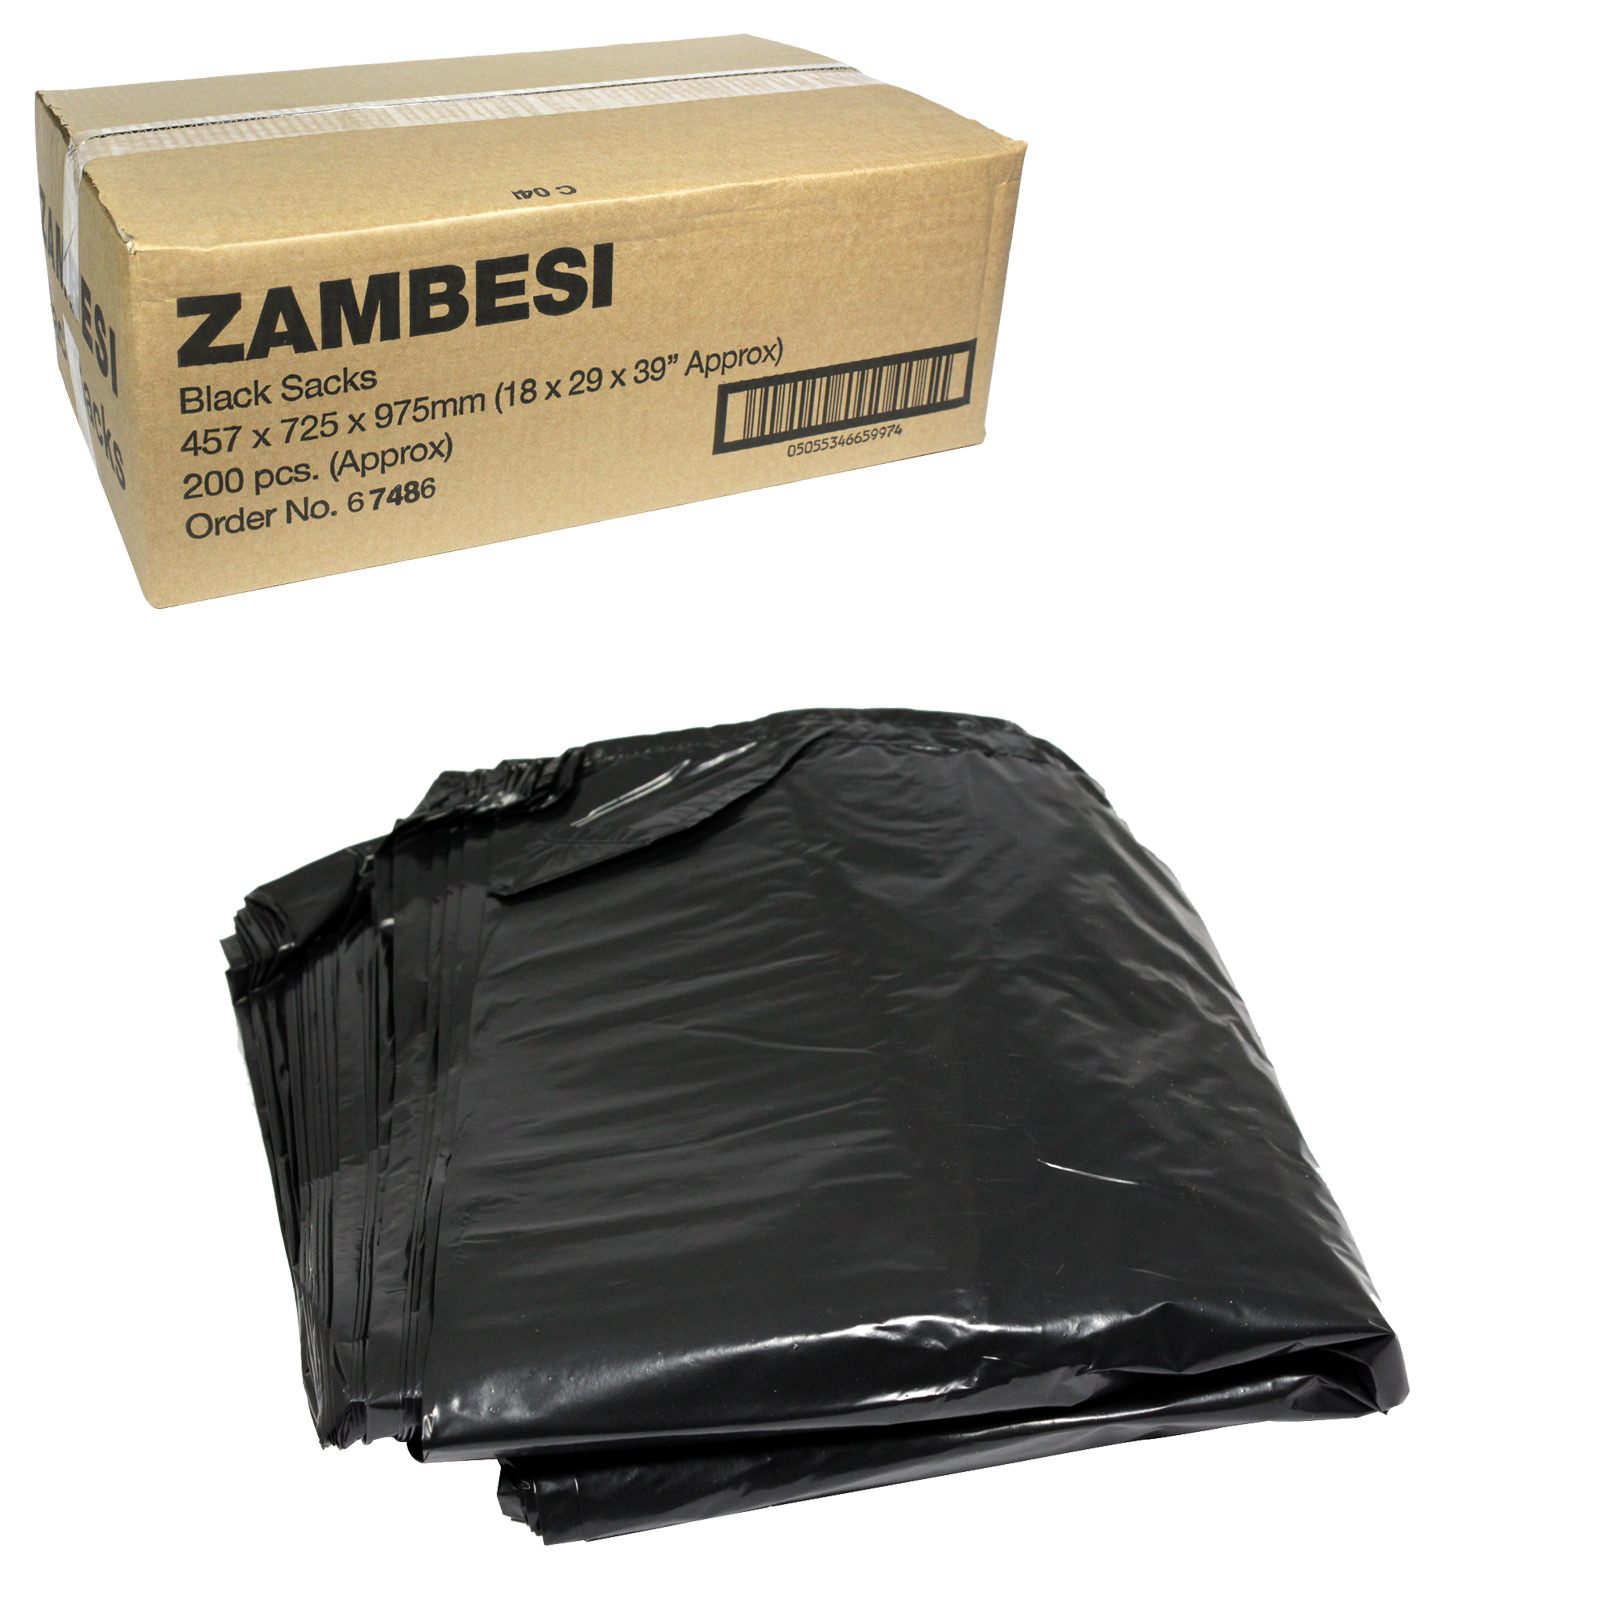 ZAMBESI BLACK SACKS EXTRA HEAVY DUTY 18